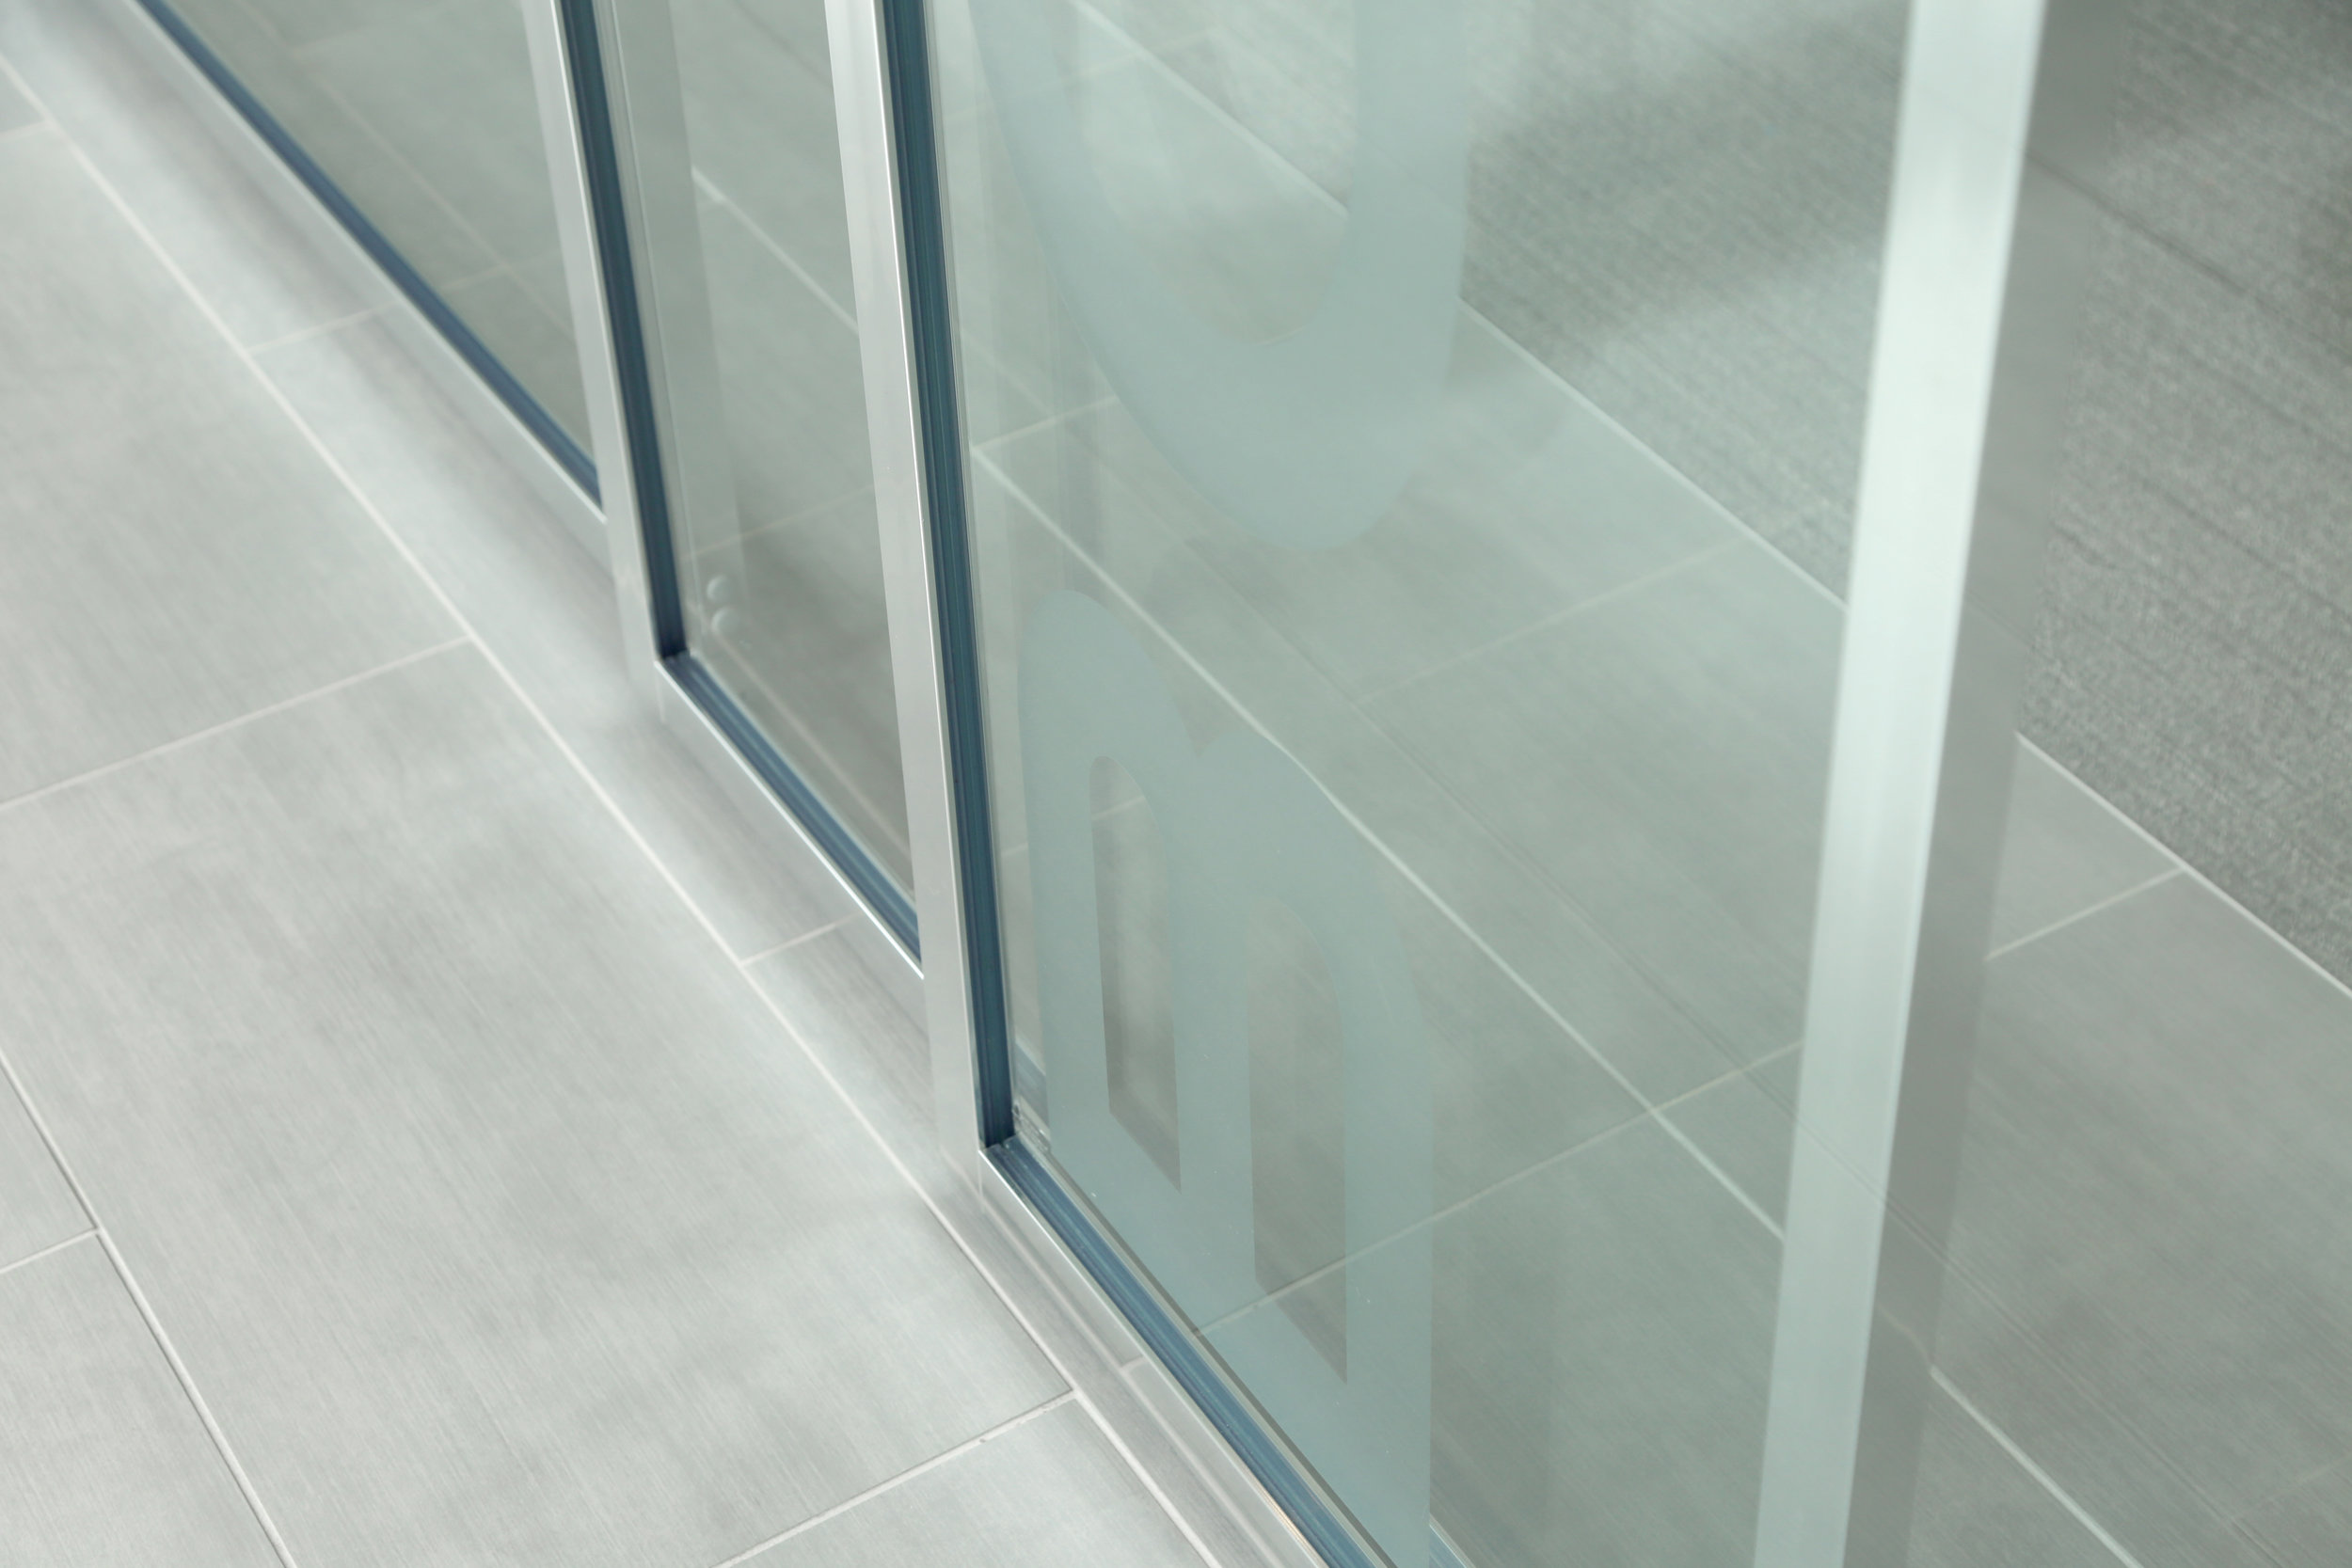 Sliding Wall System Stacking Glass Aluminum Panels - Spaceworks AI.jpg